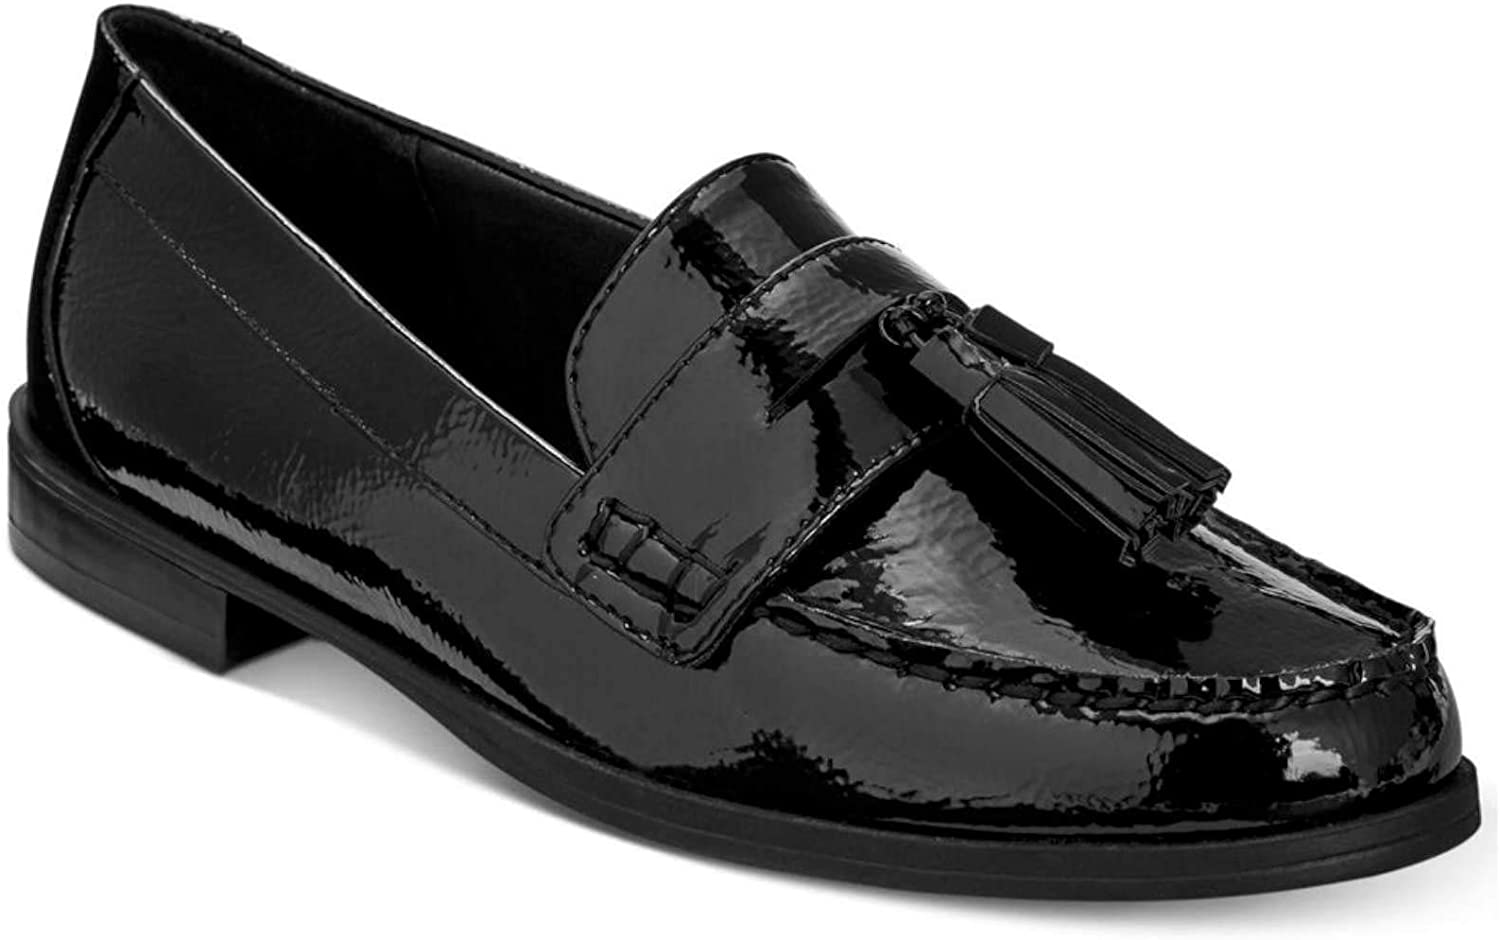 Giani Bernini Womens Mauwe Closed Toe Loafers